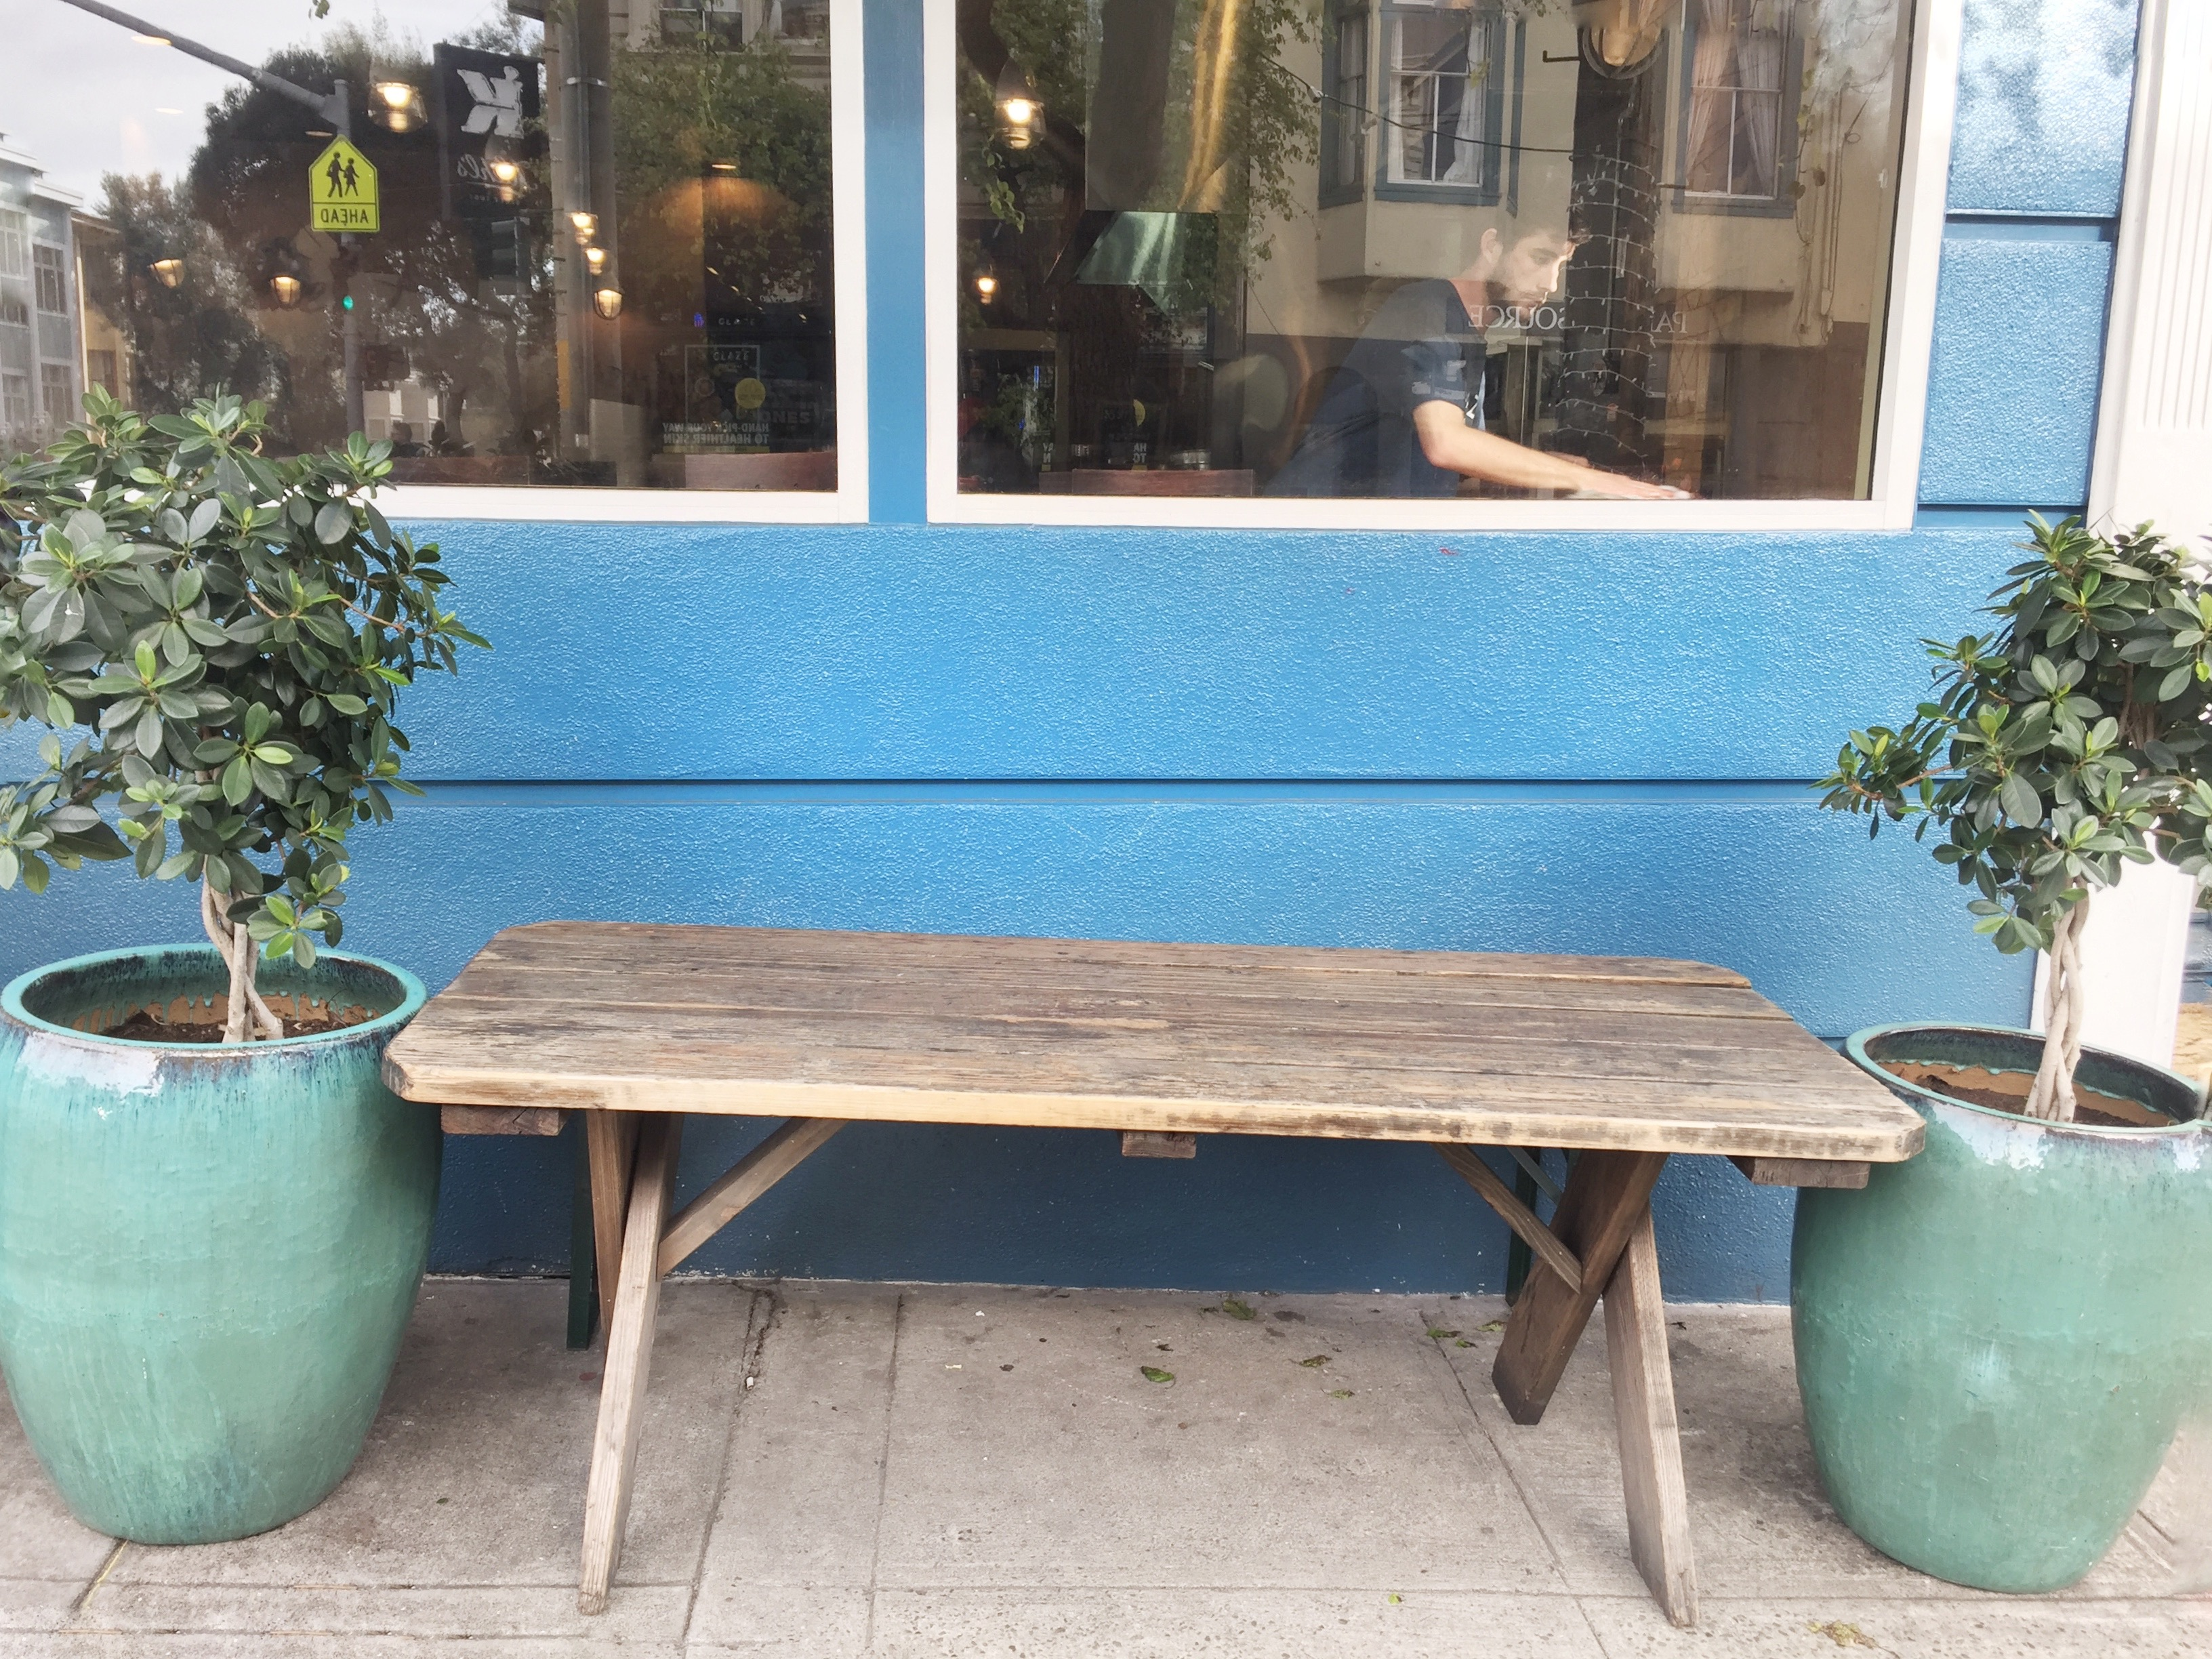 San_Francisco_bench